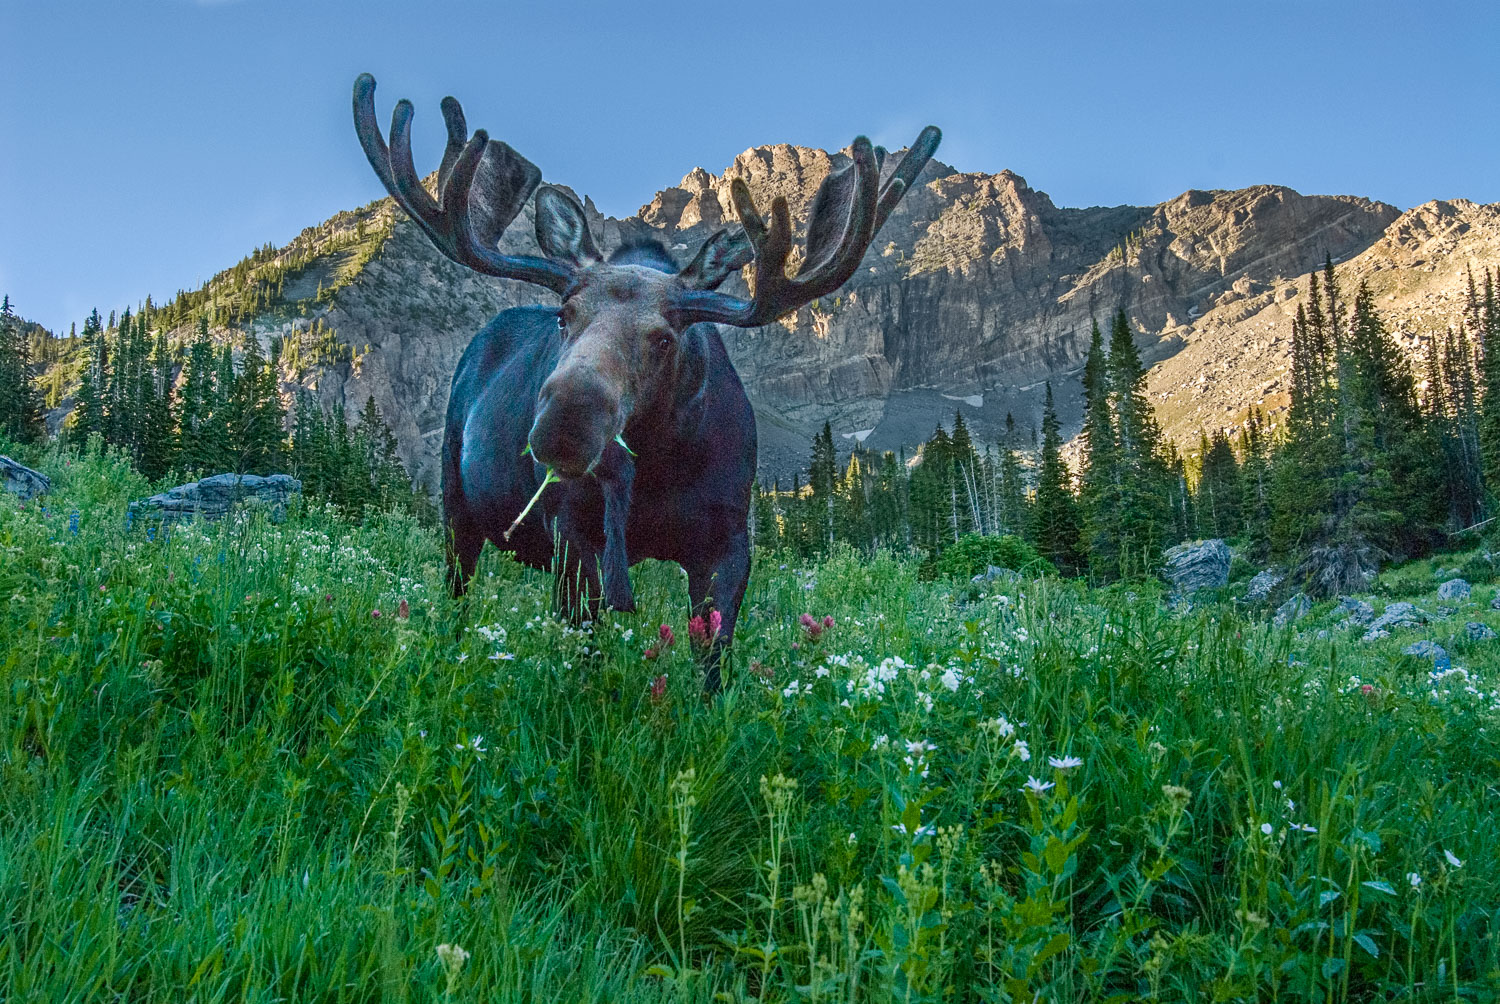 Grazing Bull Moose Eye to Eye with Photographer, Alta, Wasatch M